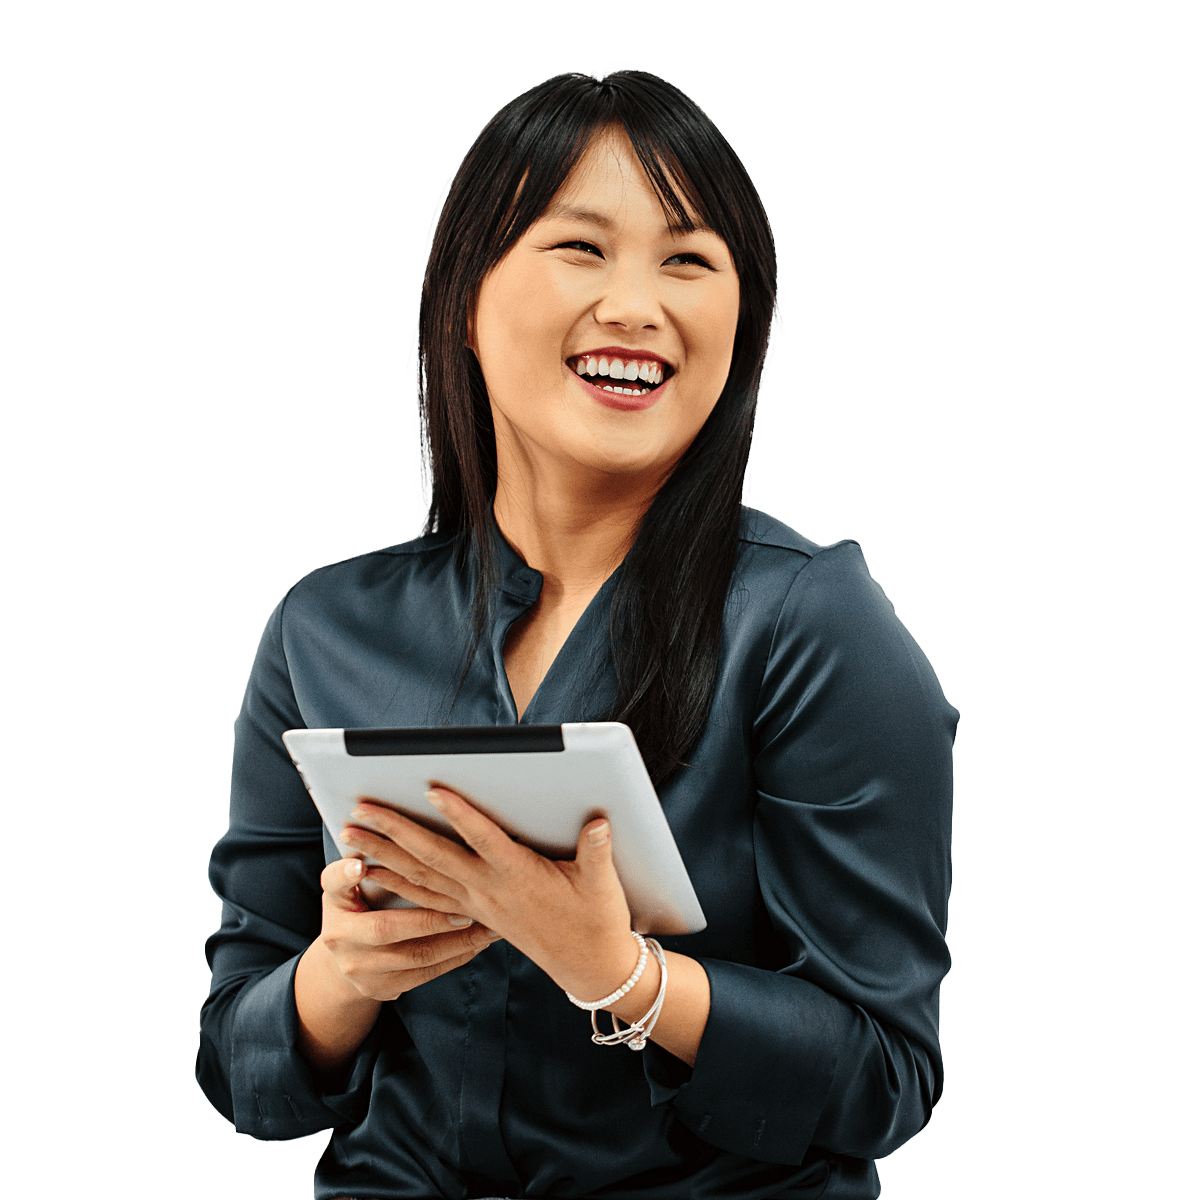 Woman holding an ipad laughing while looking off to the side.